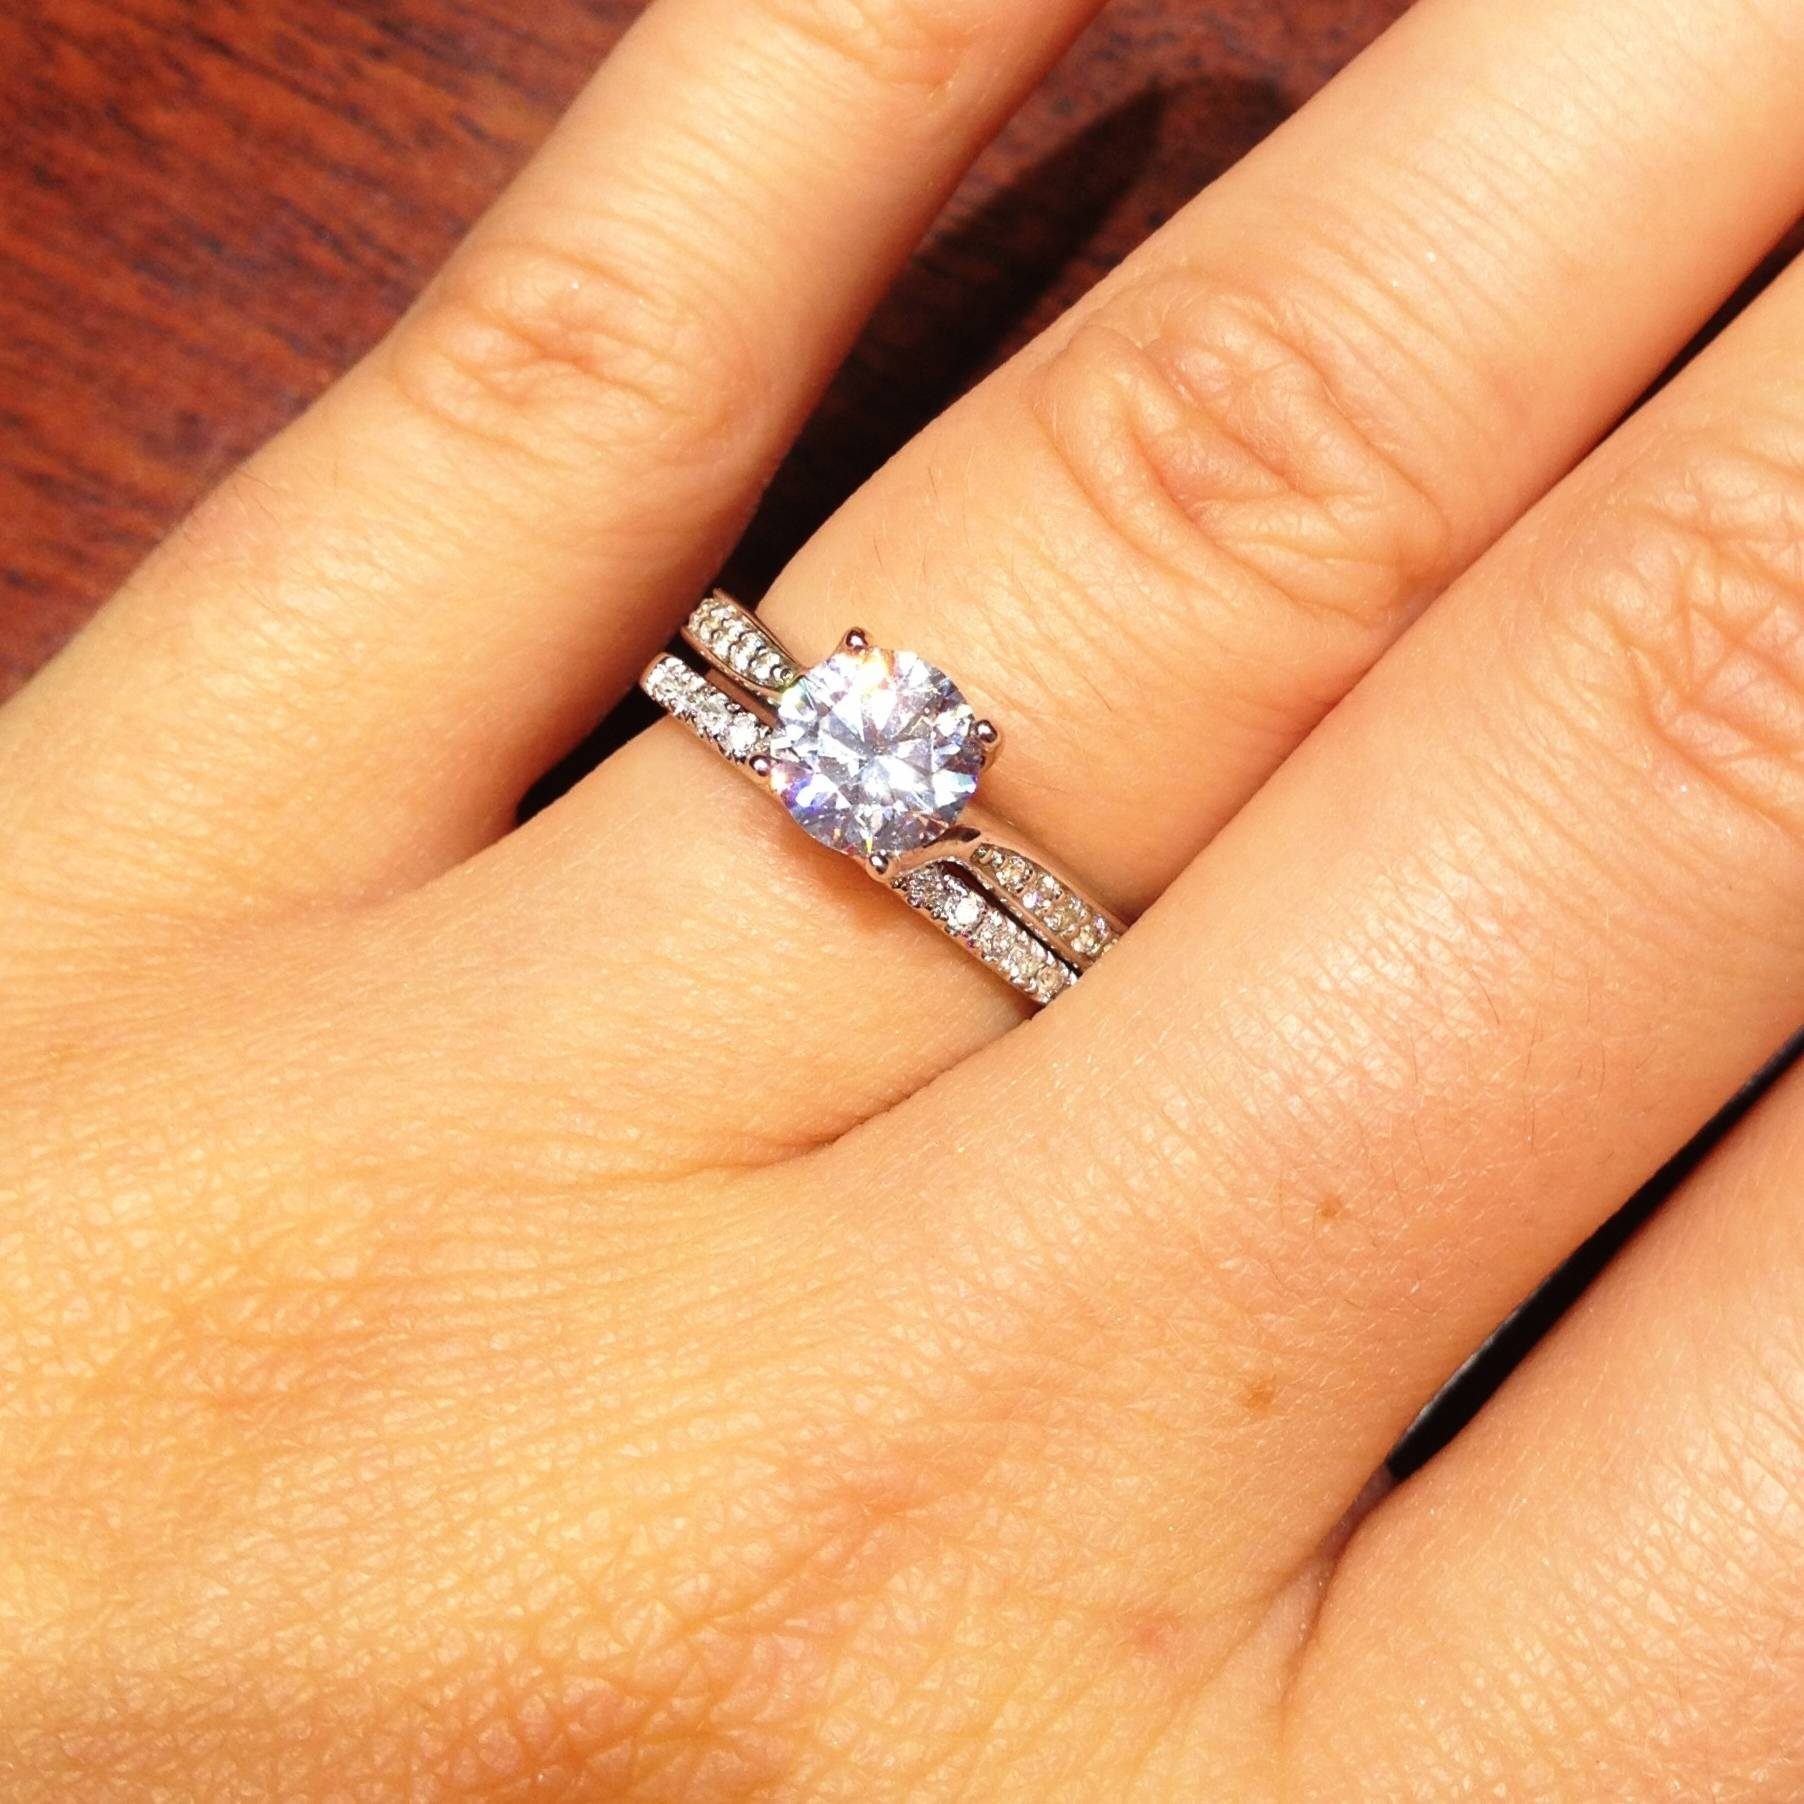 Engagement Rings : Amazing Solitaire Engagement Rings With Diamond Within Skinny Diamond Wedding Bands (View 5 of 15)